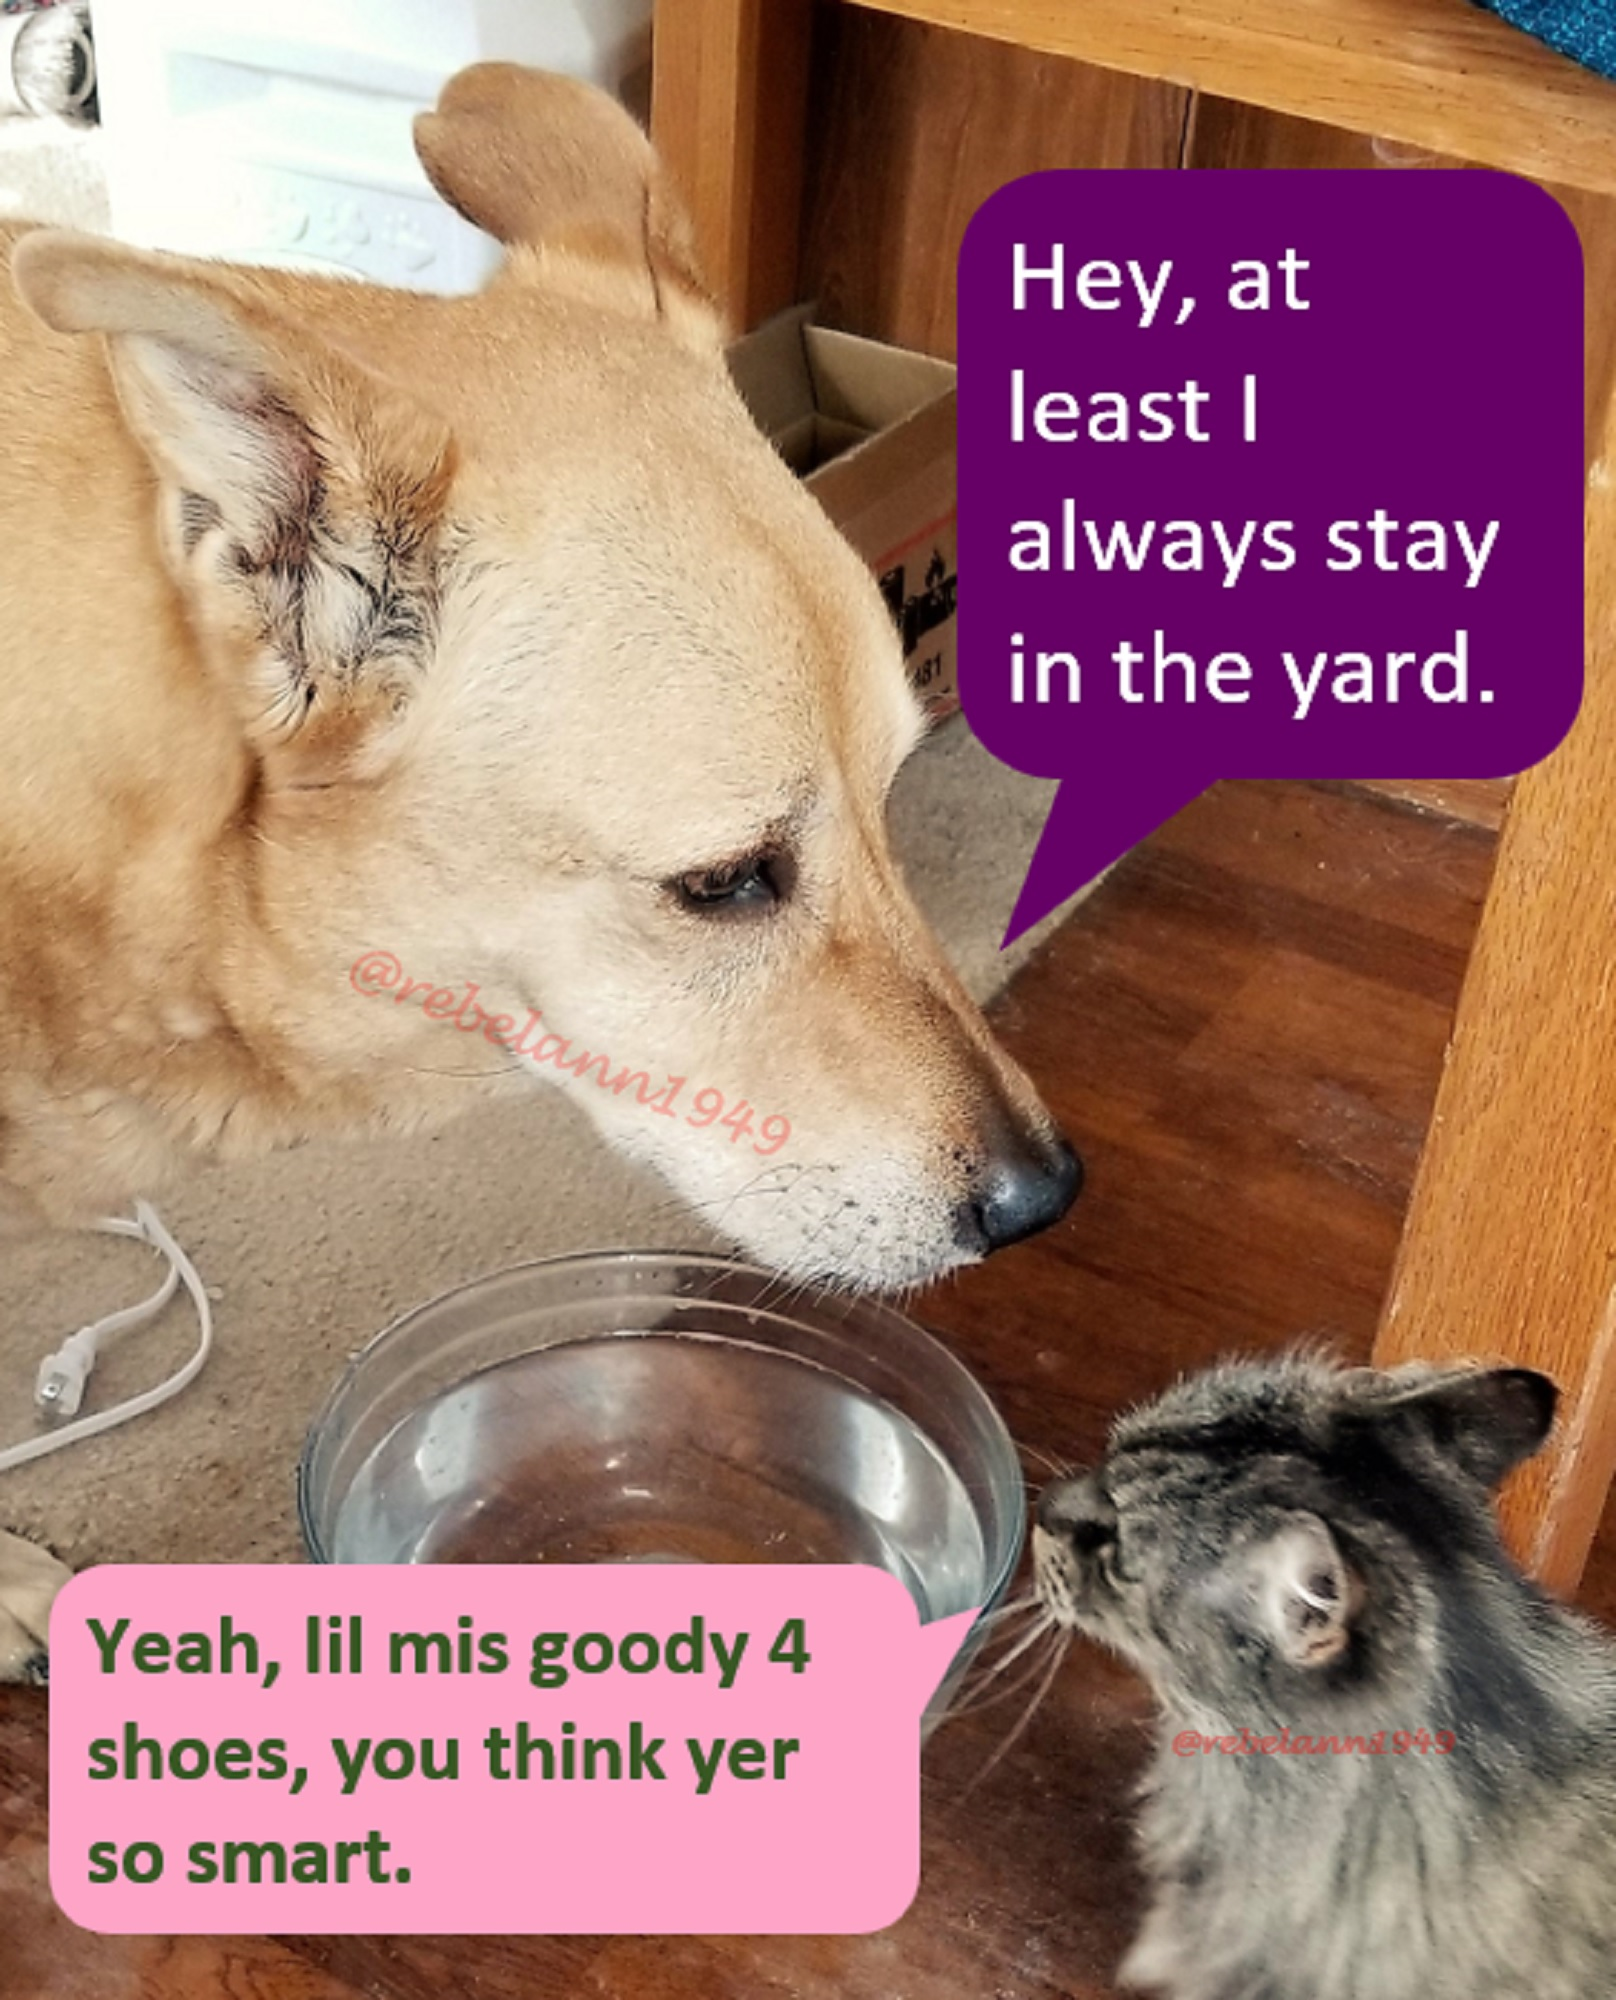 I took this shot on the 19th. It seems these two are always meeting at the water bowl.